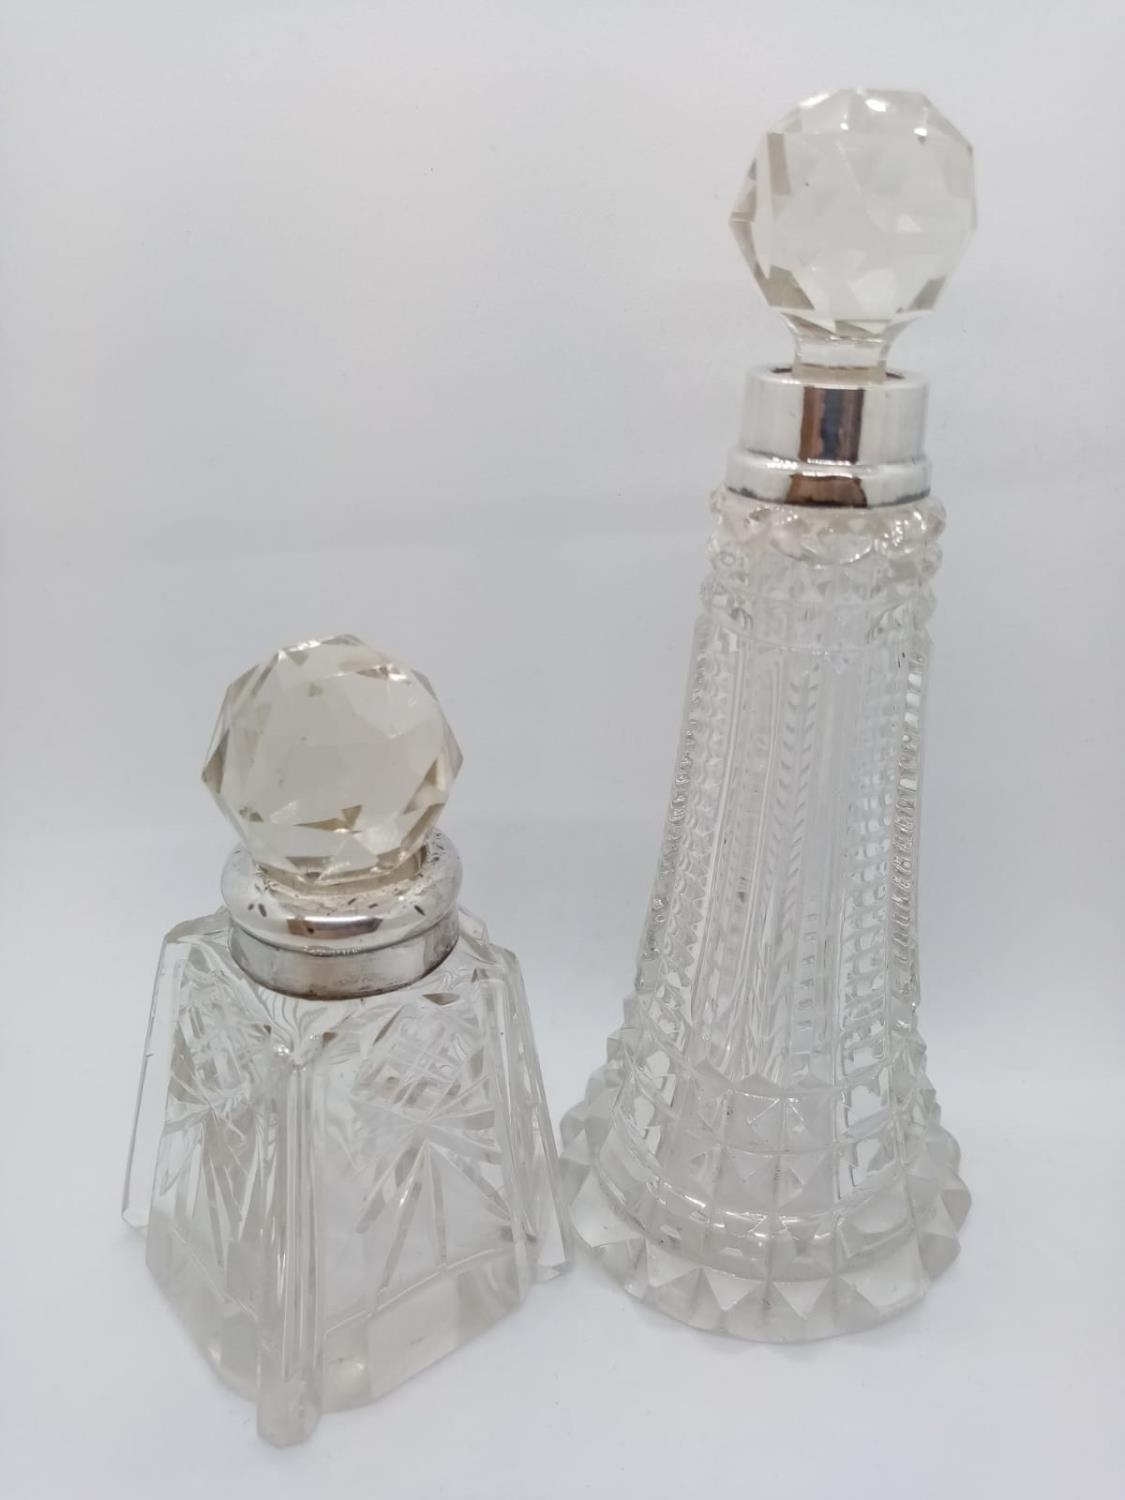 2 x Cut Glass SCENT BOTTLES. Silver Collars and also with original stoppers. Nice Art Deco style.